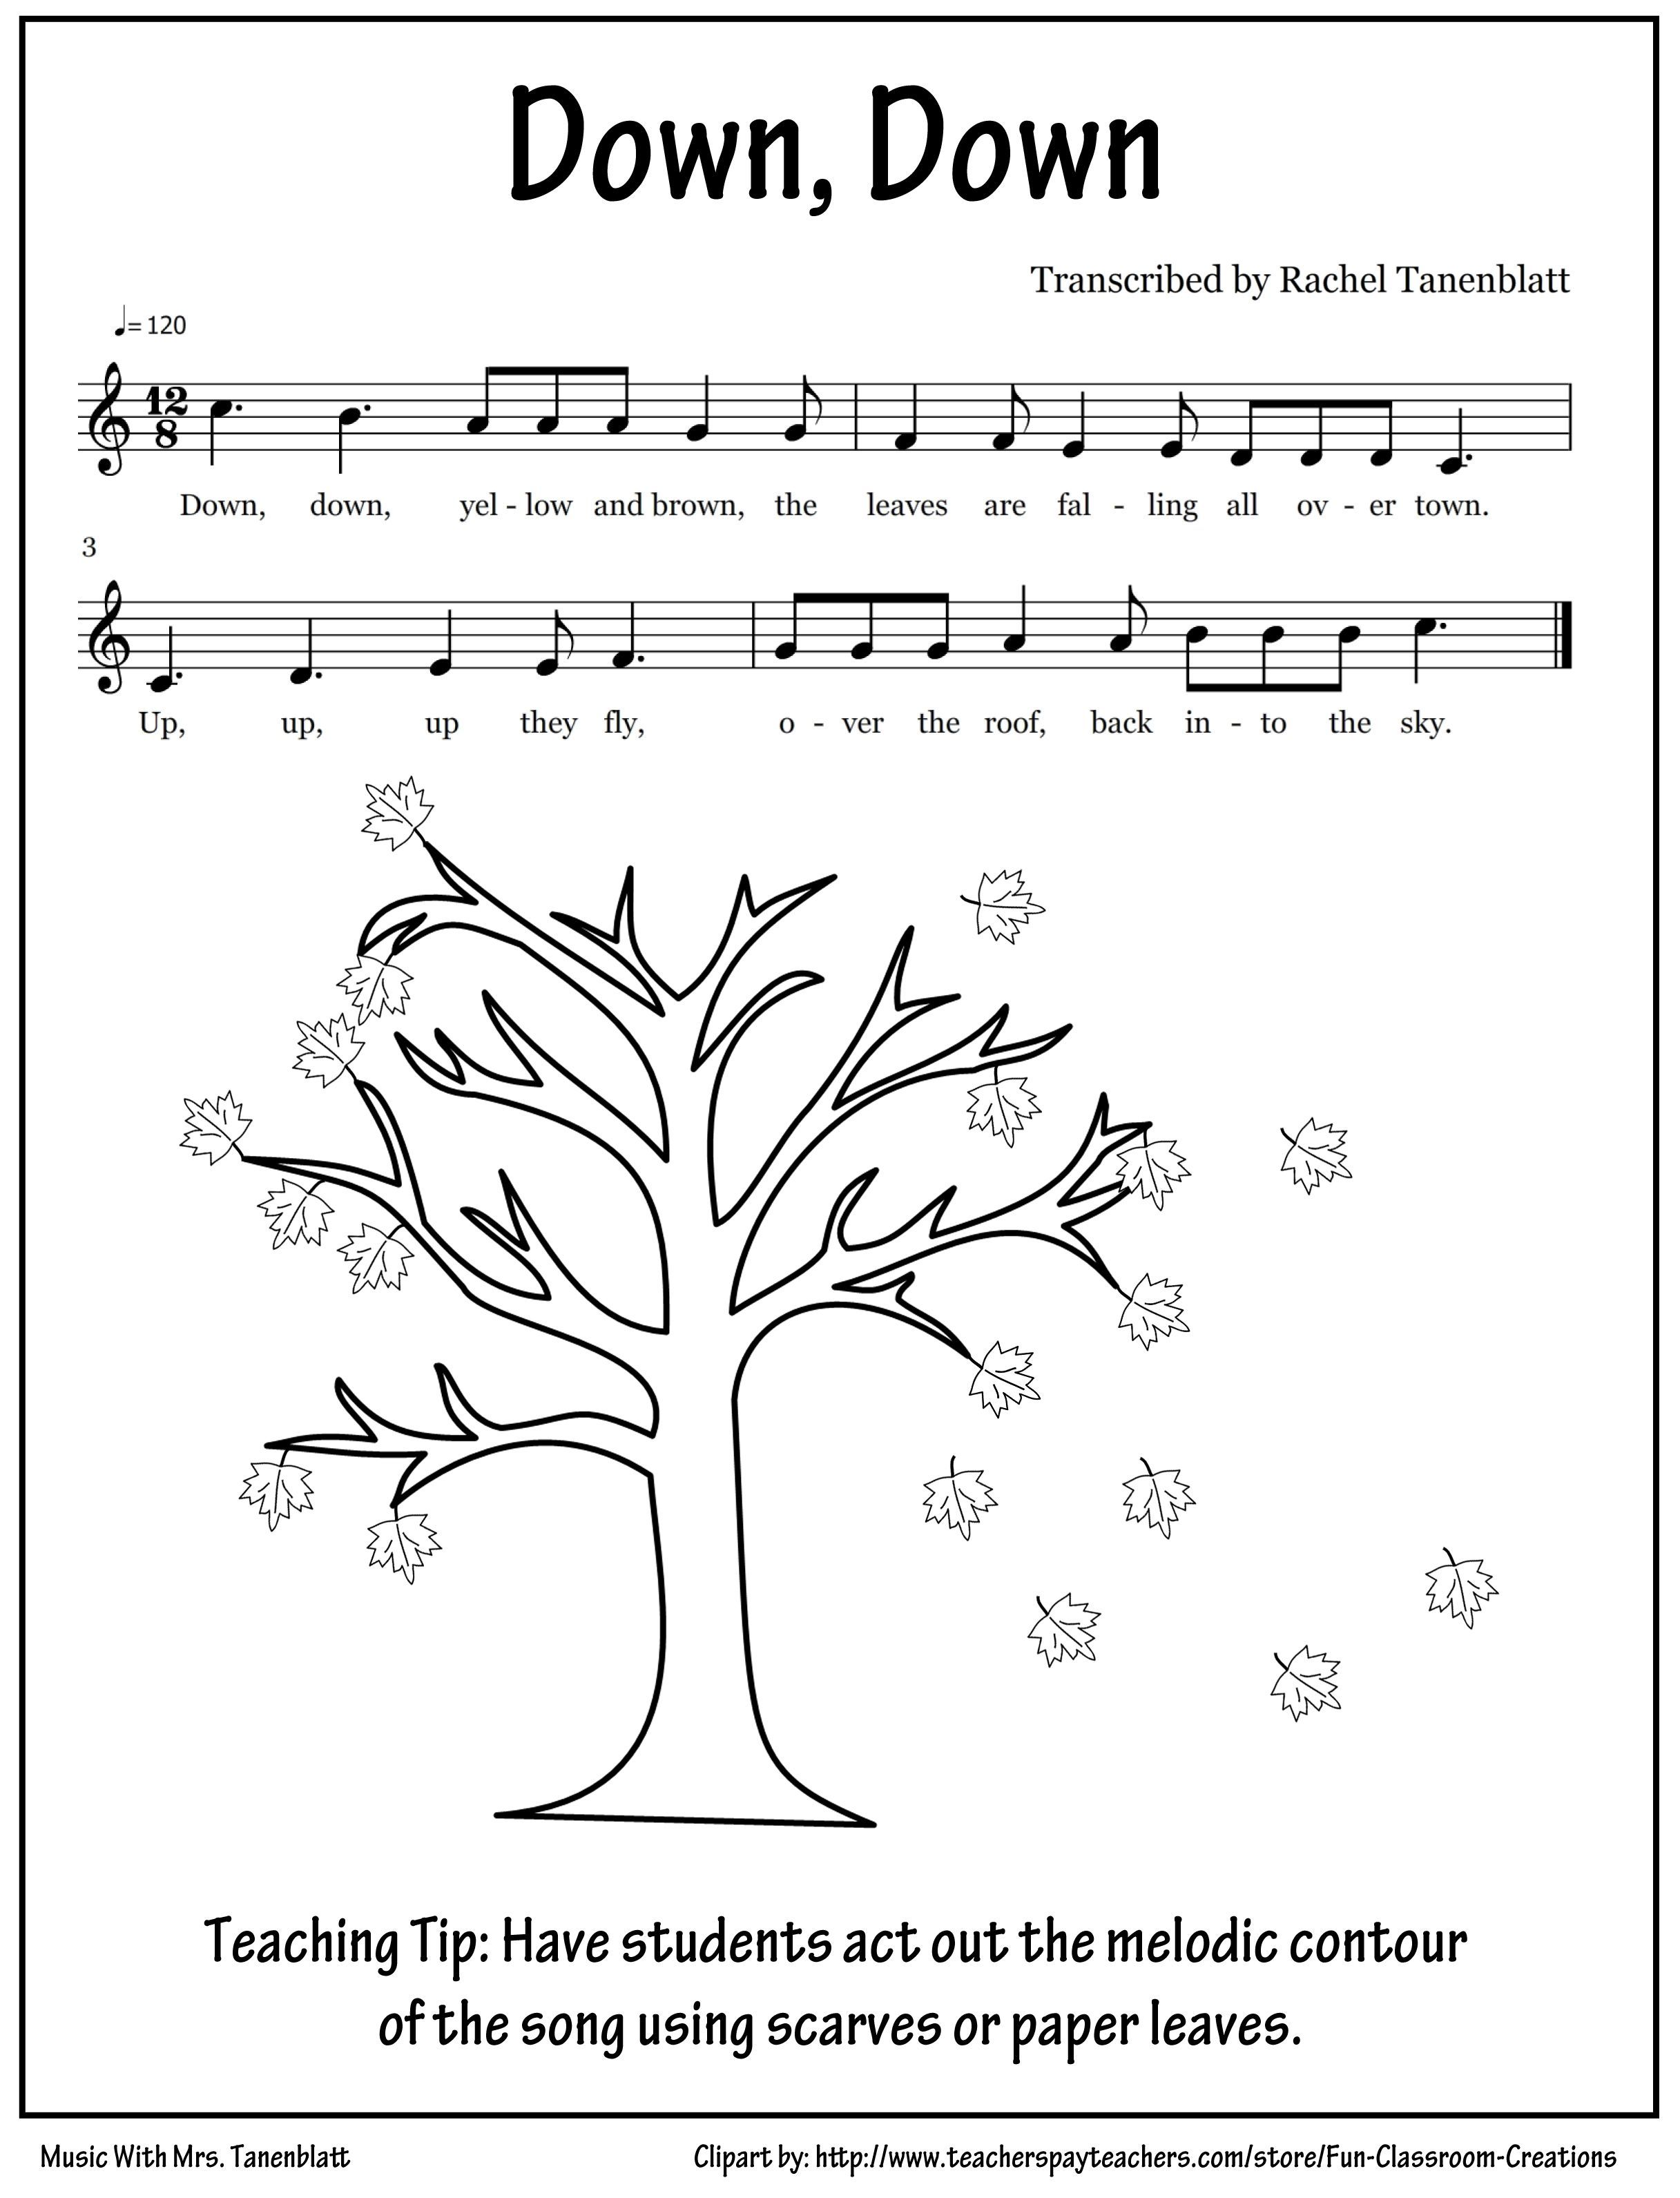 Kindergarten Fall Leaves Song Can Color In Paper Leaves Then Use To Show Contour In Song Love Kindergarten Music Music Lesson Plans Elementary Music Class [ 3183 x 2433 Pixel ]